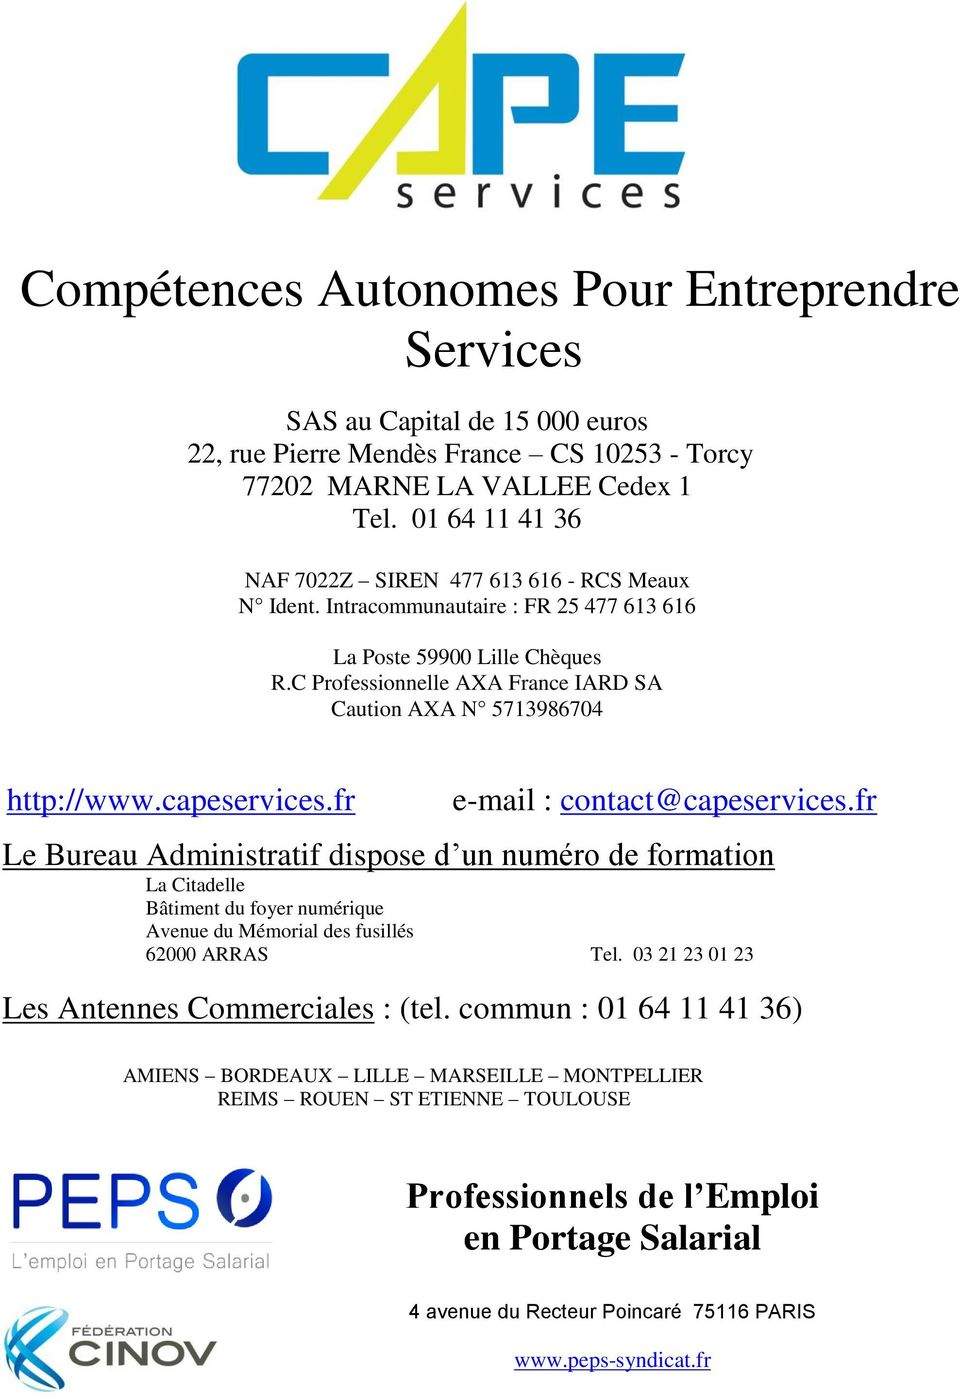 C Professionnelle AXA France IARD SA Caution AXA N 5713986704 http://www.capeservices.fr e-mail : contact@capeservices.